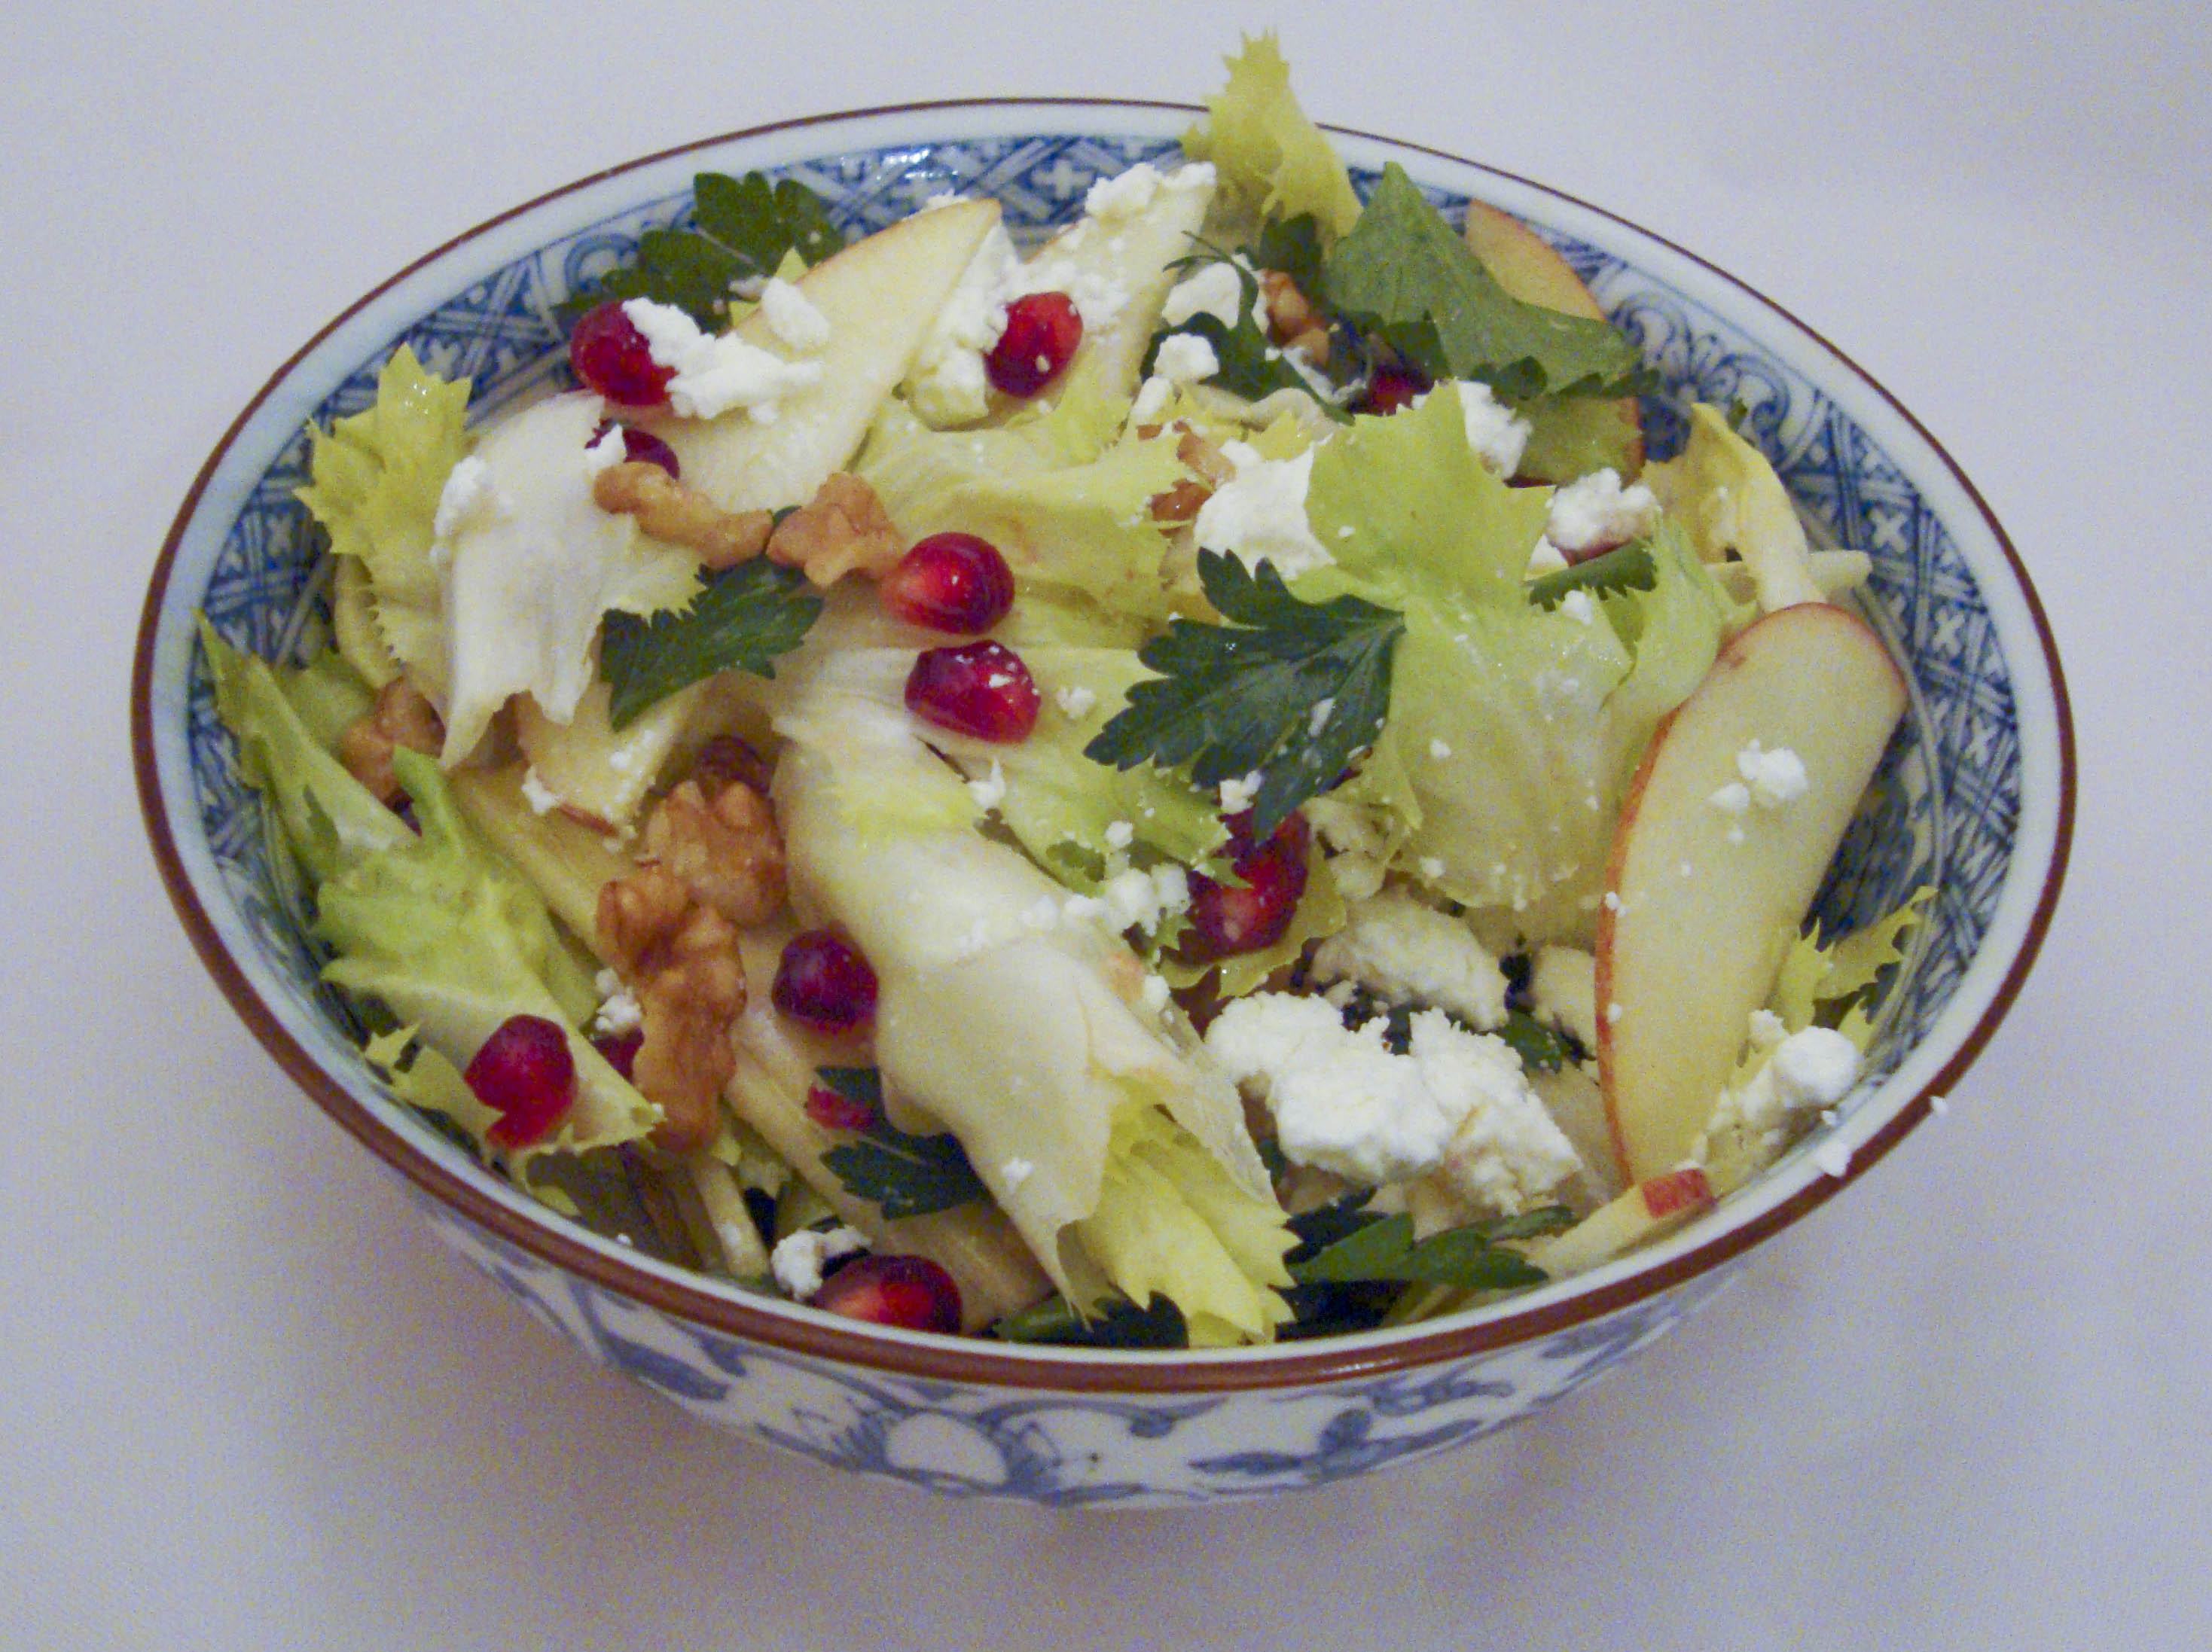 Escarole, Parsley and Apple Salad with Goat Cheese and Pomegranate